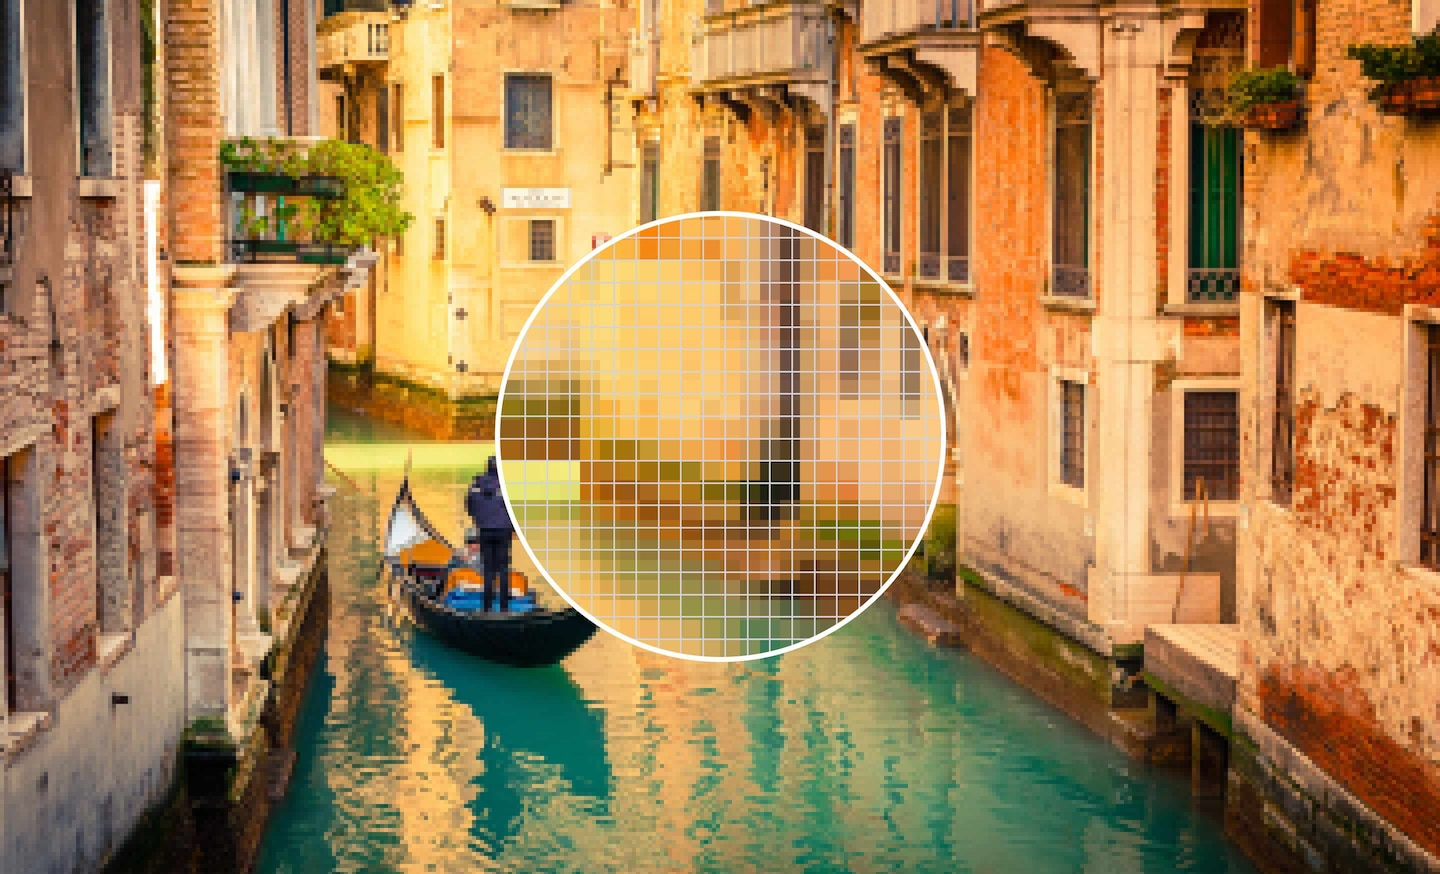 Full HD image of a Venetian canal